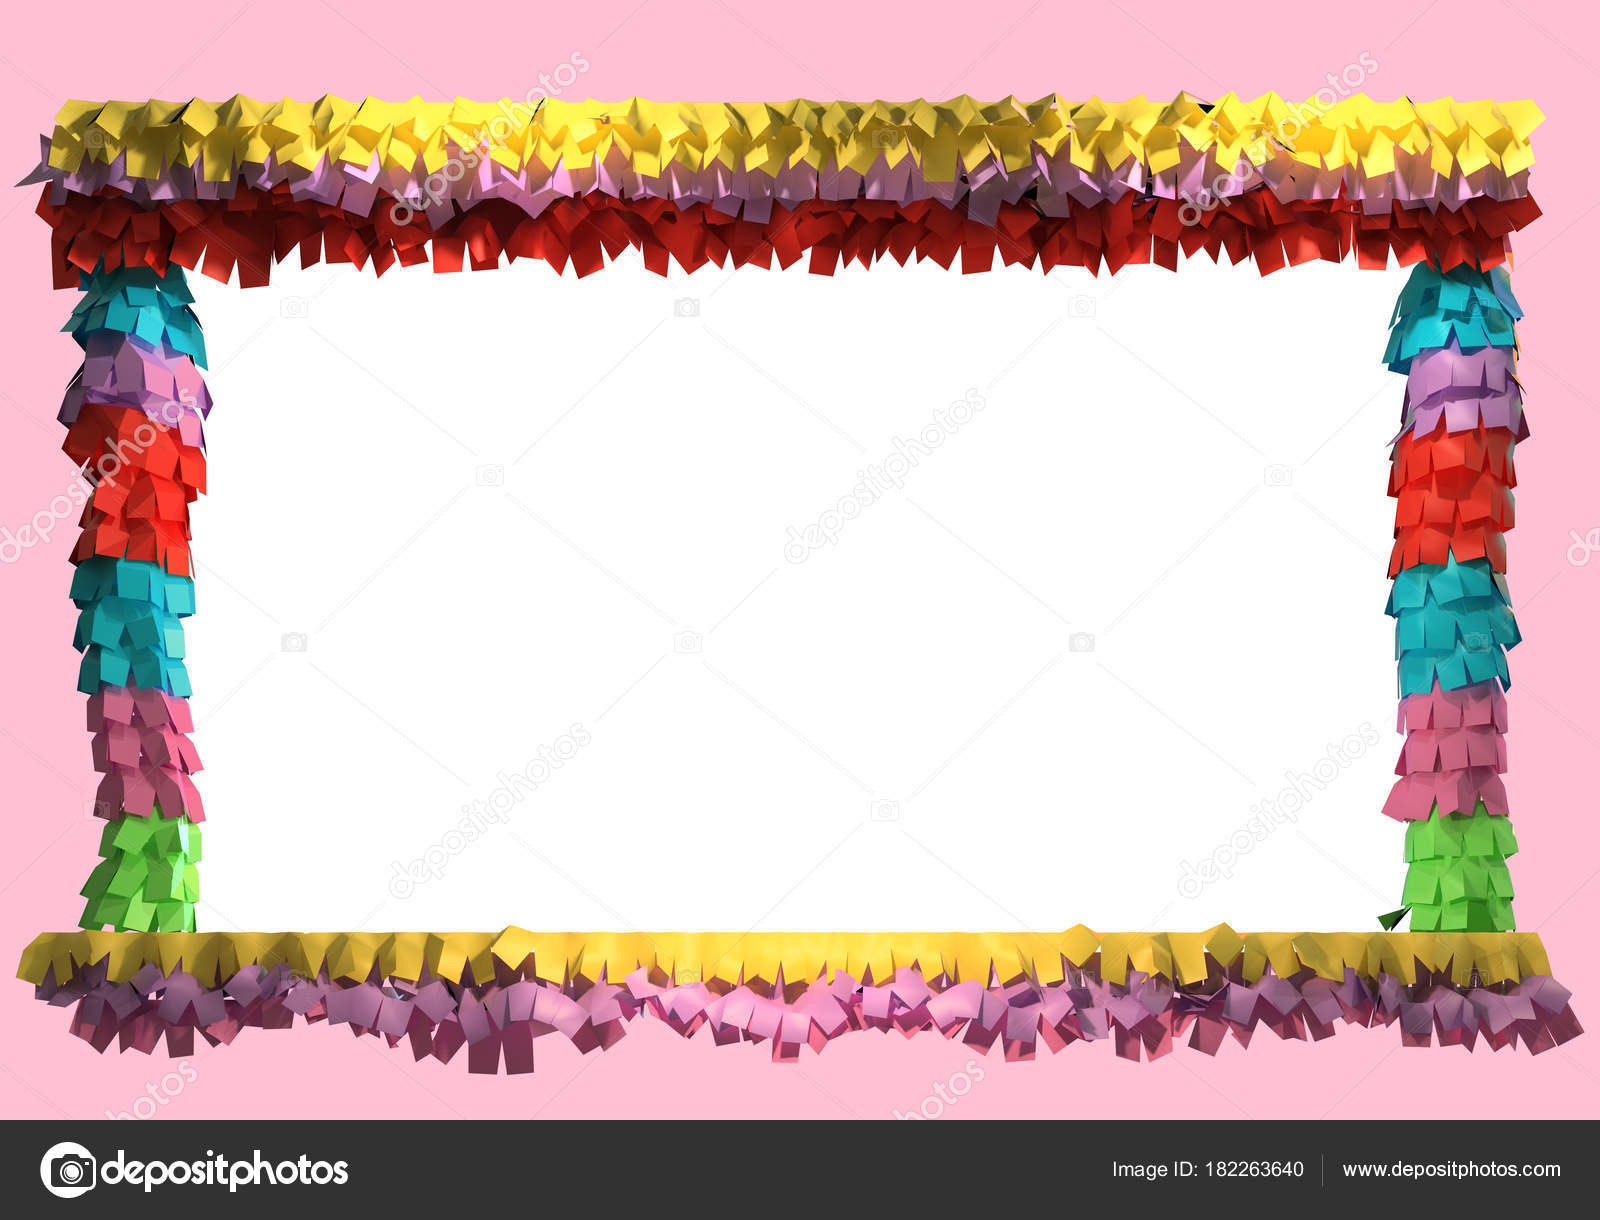 mexican clipground party decor clipart fiesta decorations